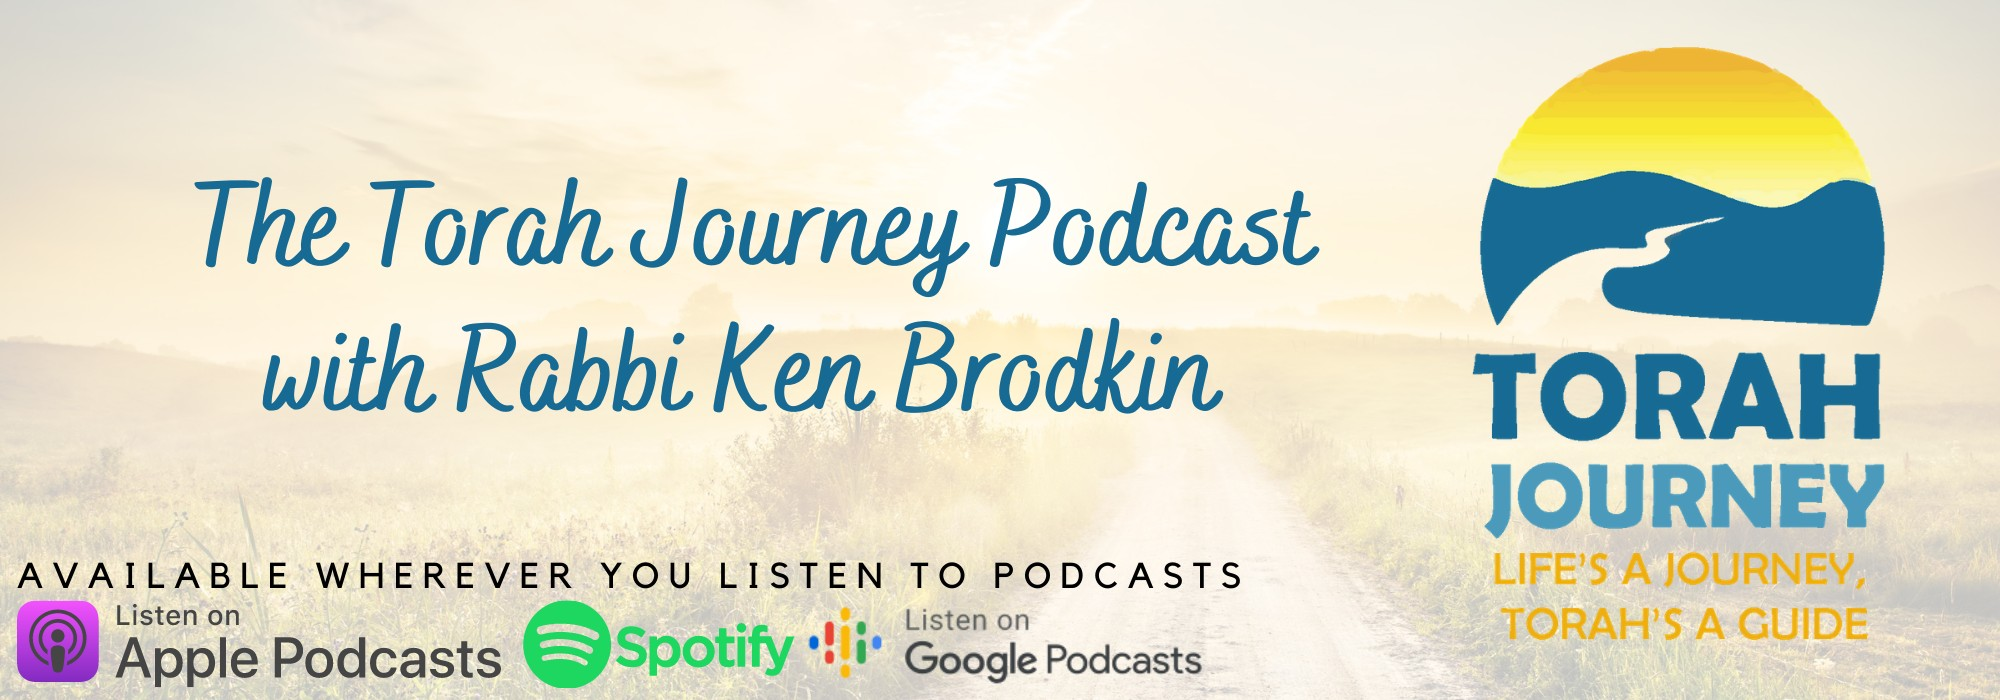 """<a href=""""https://www.buzzsprout.com/1139624""""                                     target="""""""">                                                                 <span class=""""slider_title"""">                                     Rabbi Brodkin's Podcast                                </span>                                                                 </a>                                                                                                                                                                                       <span class=""""slider_description"""">If you are in search of Jewish insight and inspiration, the Torah Journey Podcast is for you! Our weekly podcast will offer you timely insights from the Parsha, current events, the Jewish Year & more.</span>                                                                                     <a href=""""https://www.buzzsprout.com/1139624"""" class=""""slider_link""""                             target="""""""">                             Listen Here                            </a>"""